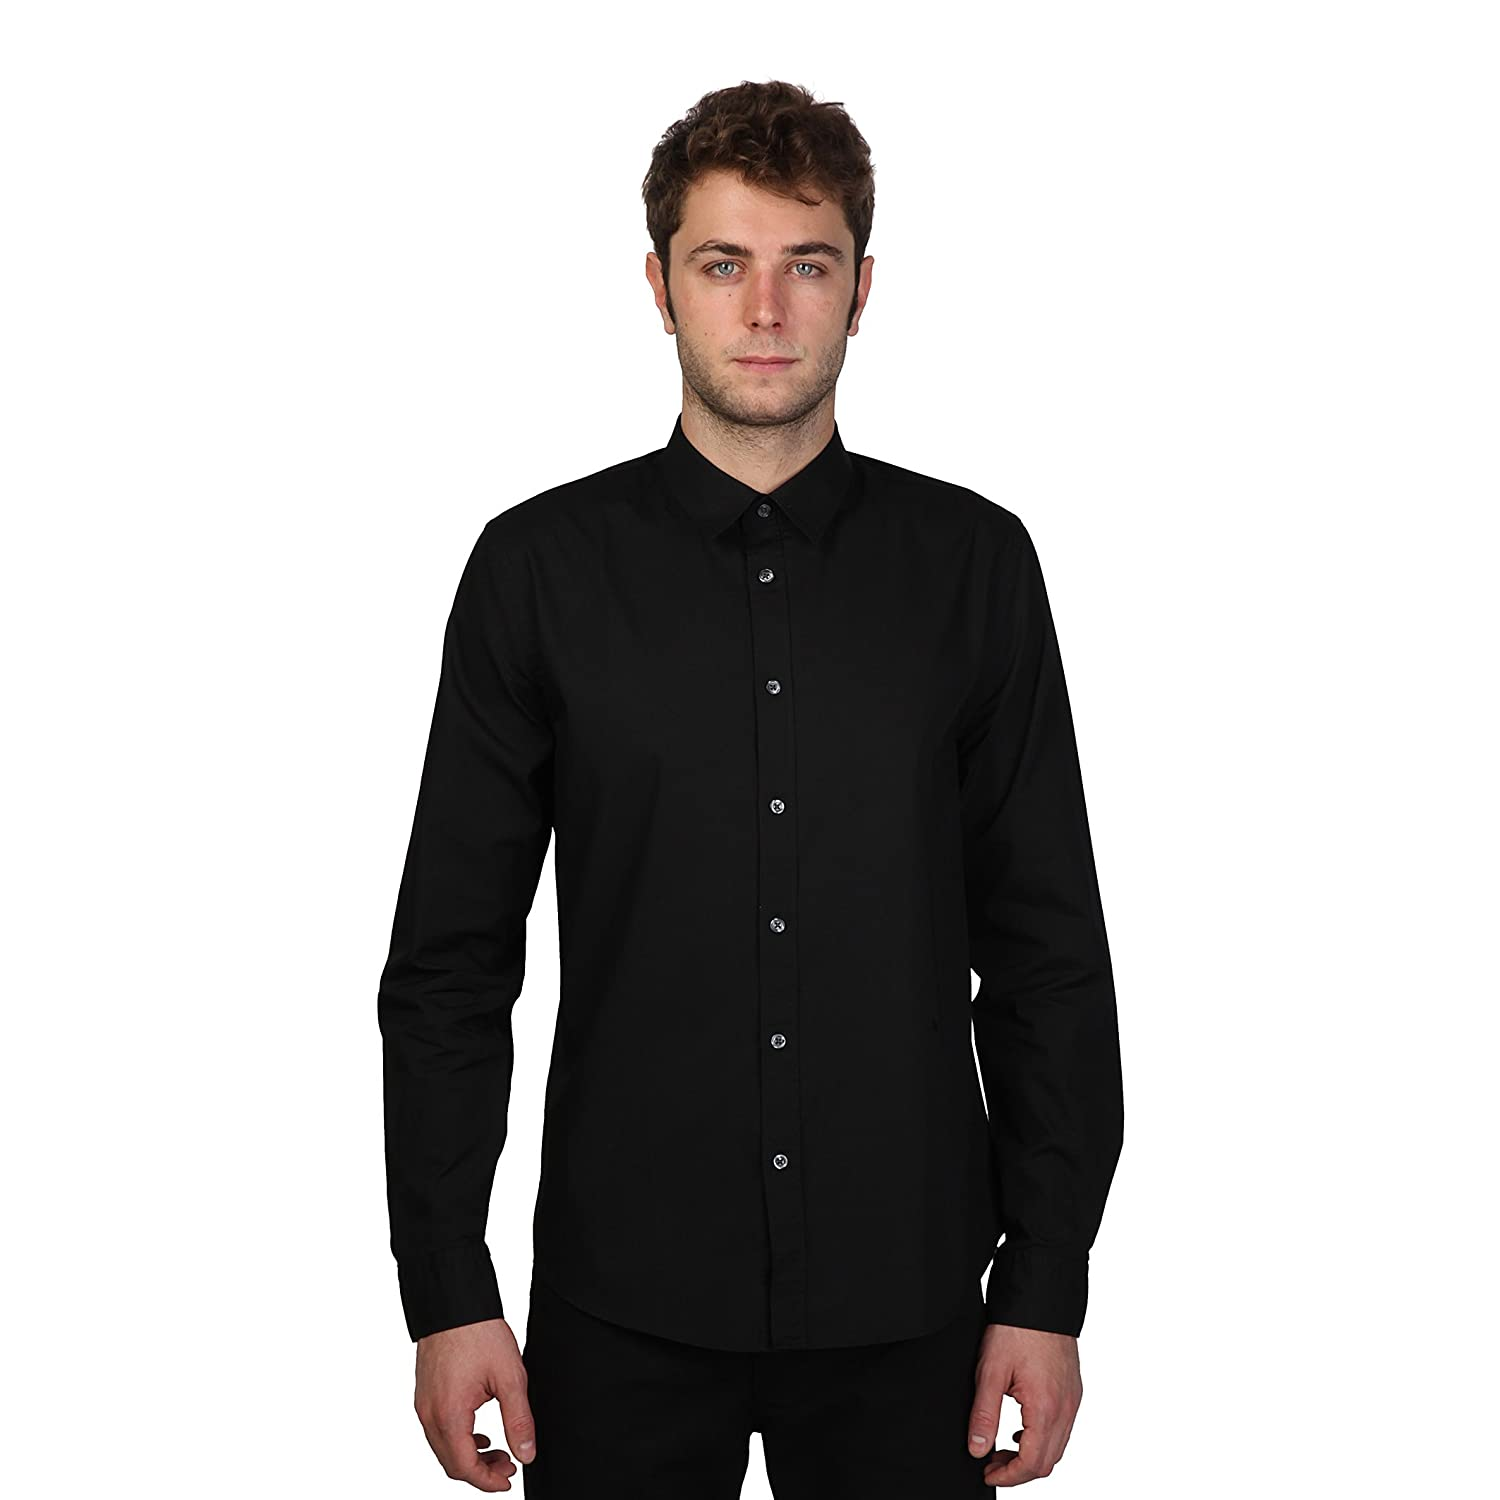 Cerruti 1881 Mens Formal Plain Long Sleeve Cotton Shirt With Small Logo